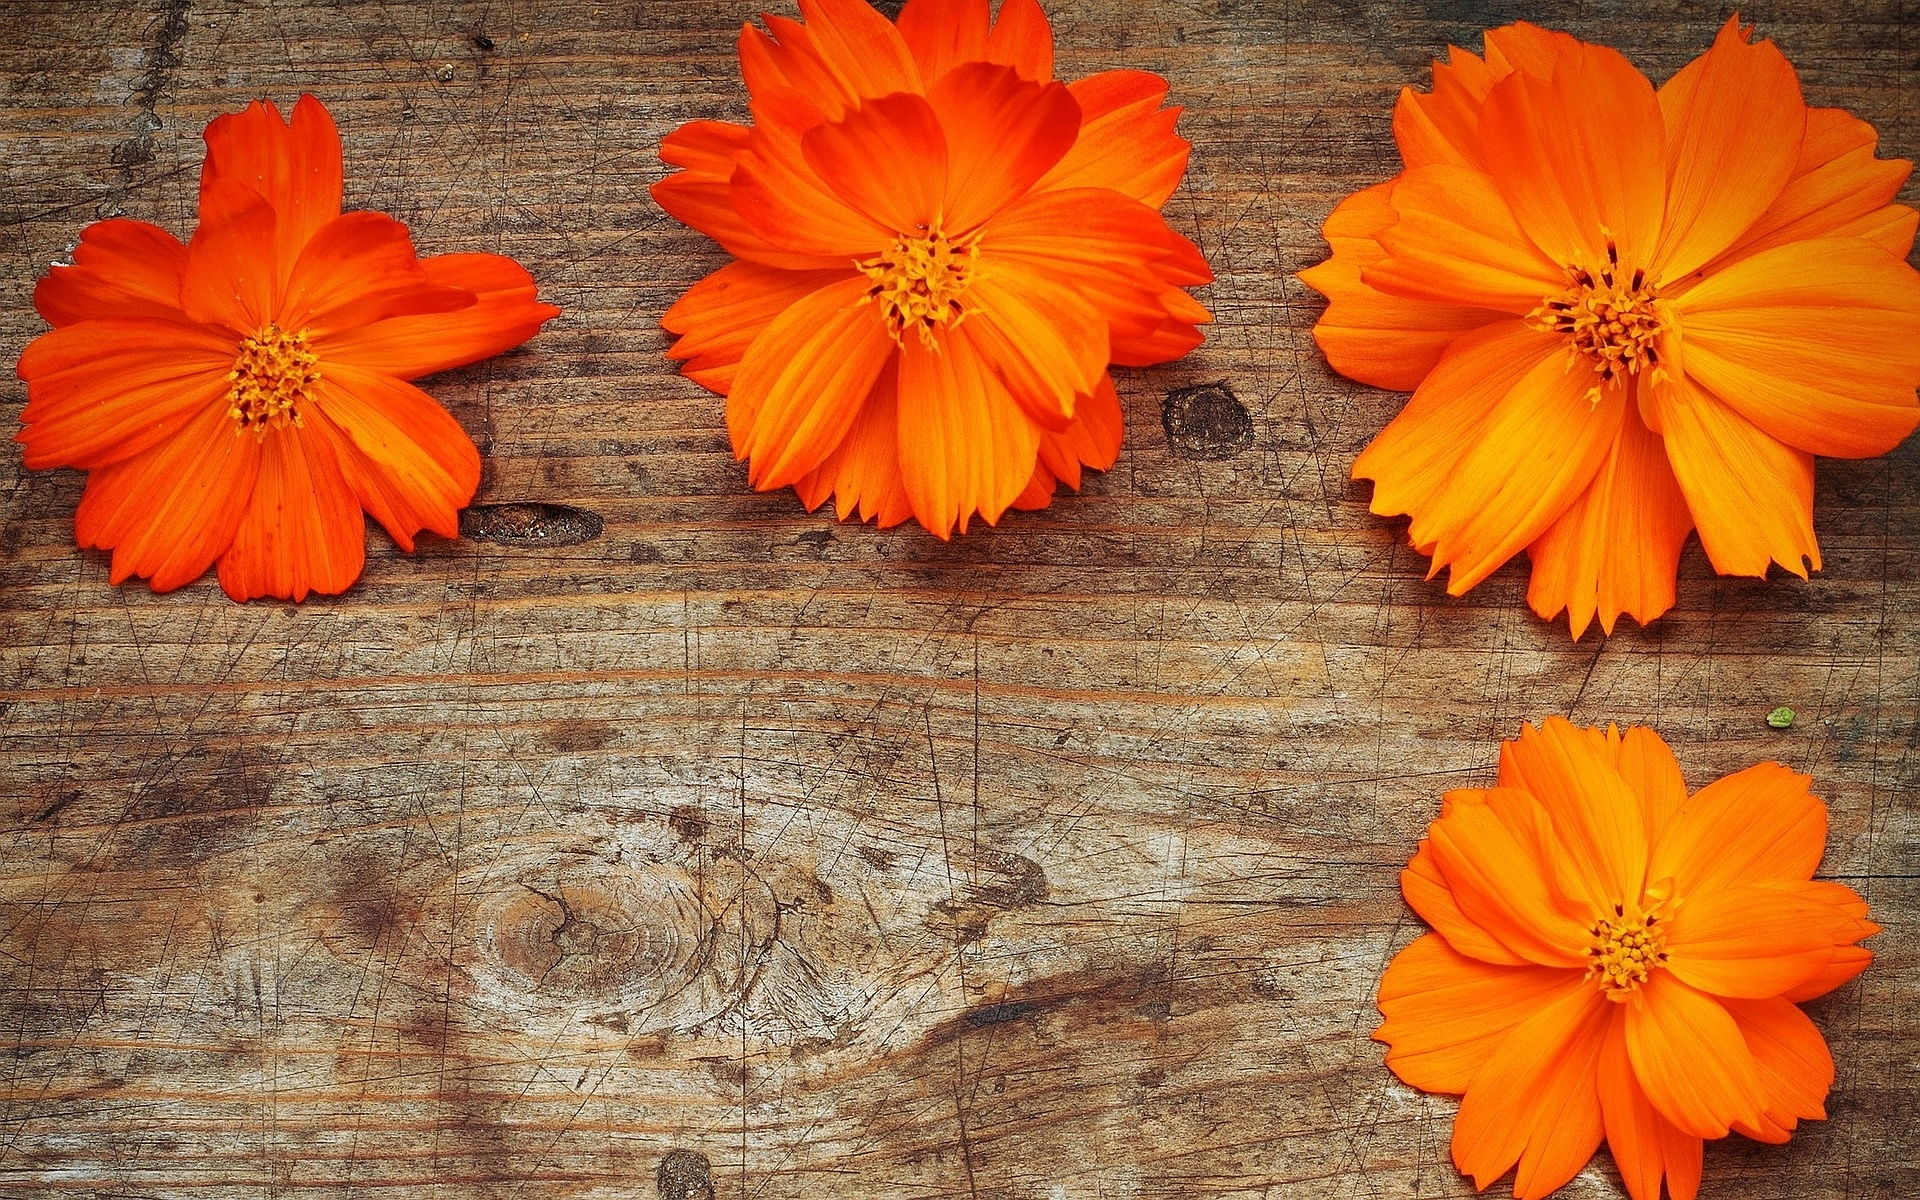 Orange Flowers Wallpaper HD Pictures One HD Wallpaper 1920x1200